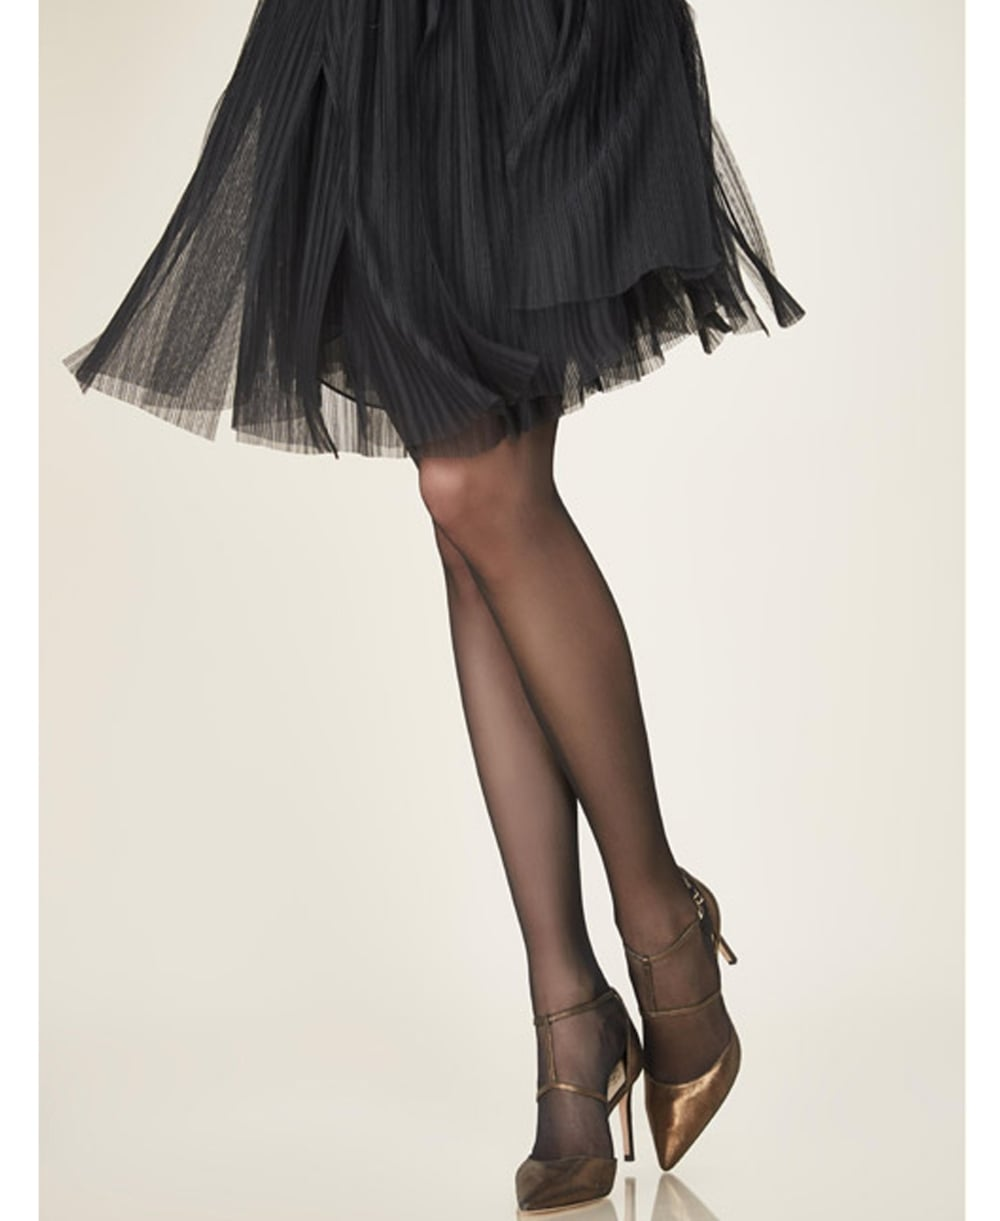 d63a4a00176 Gerbe Mat Galbe 20 Tights - Tights from luxury-legs.com UK